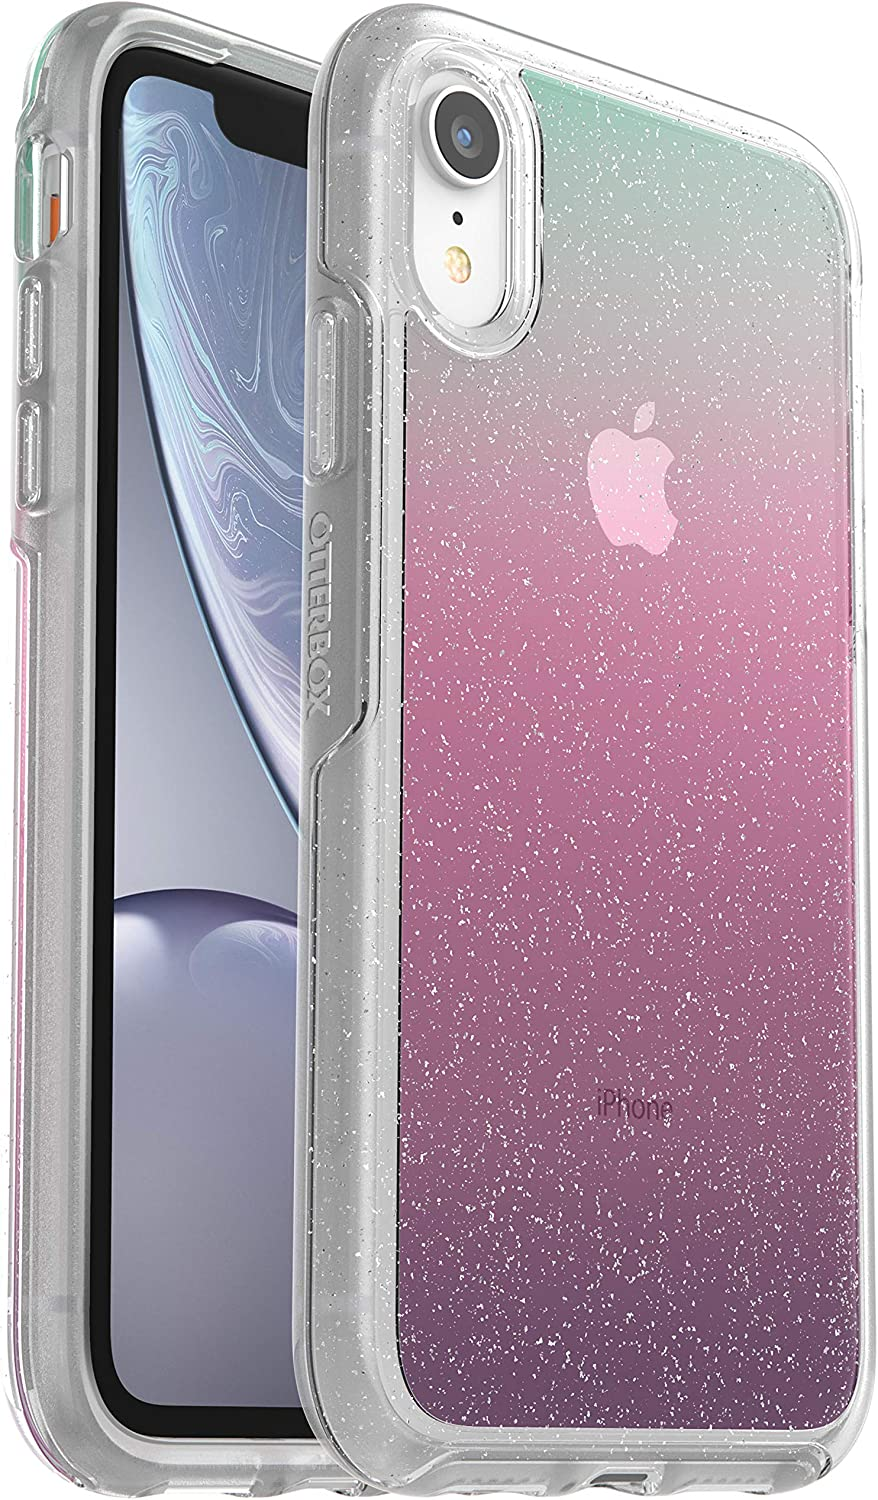 OtterBox Symmetry Clear Series Case for iPhone XR - Retail Packaging - Gradient Energy